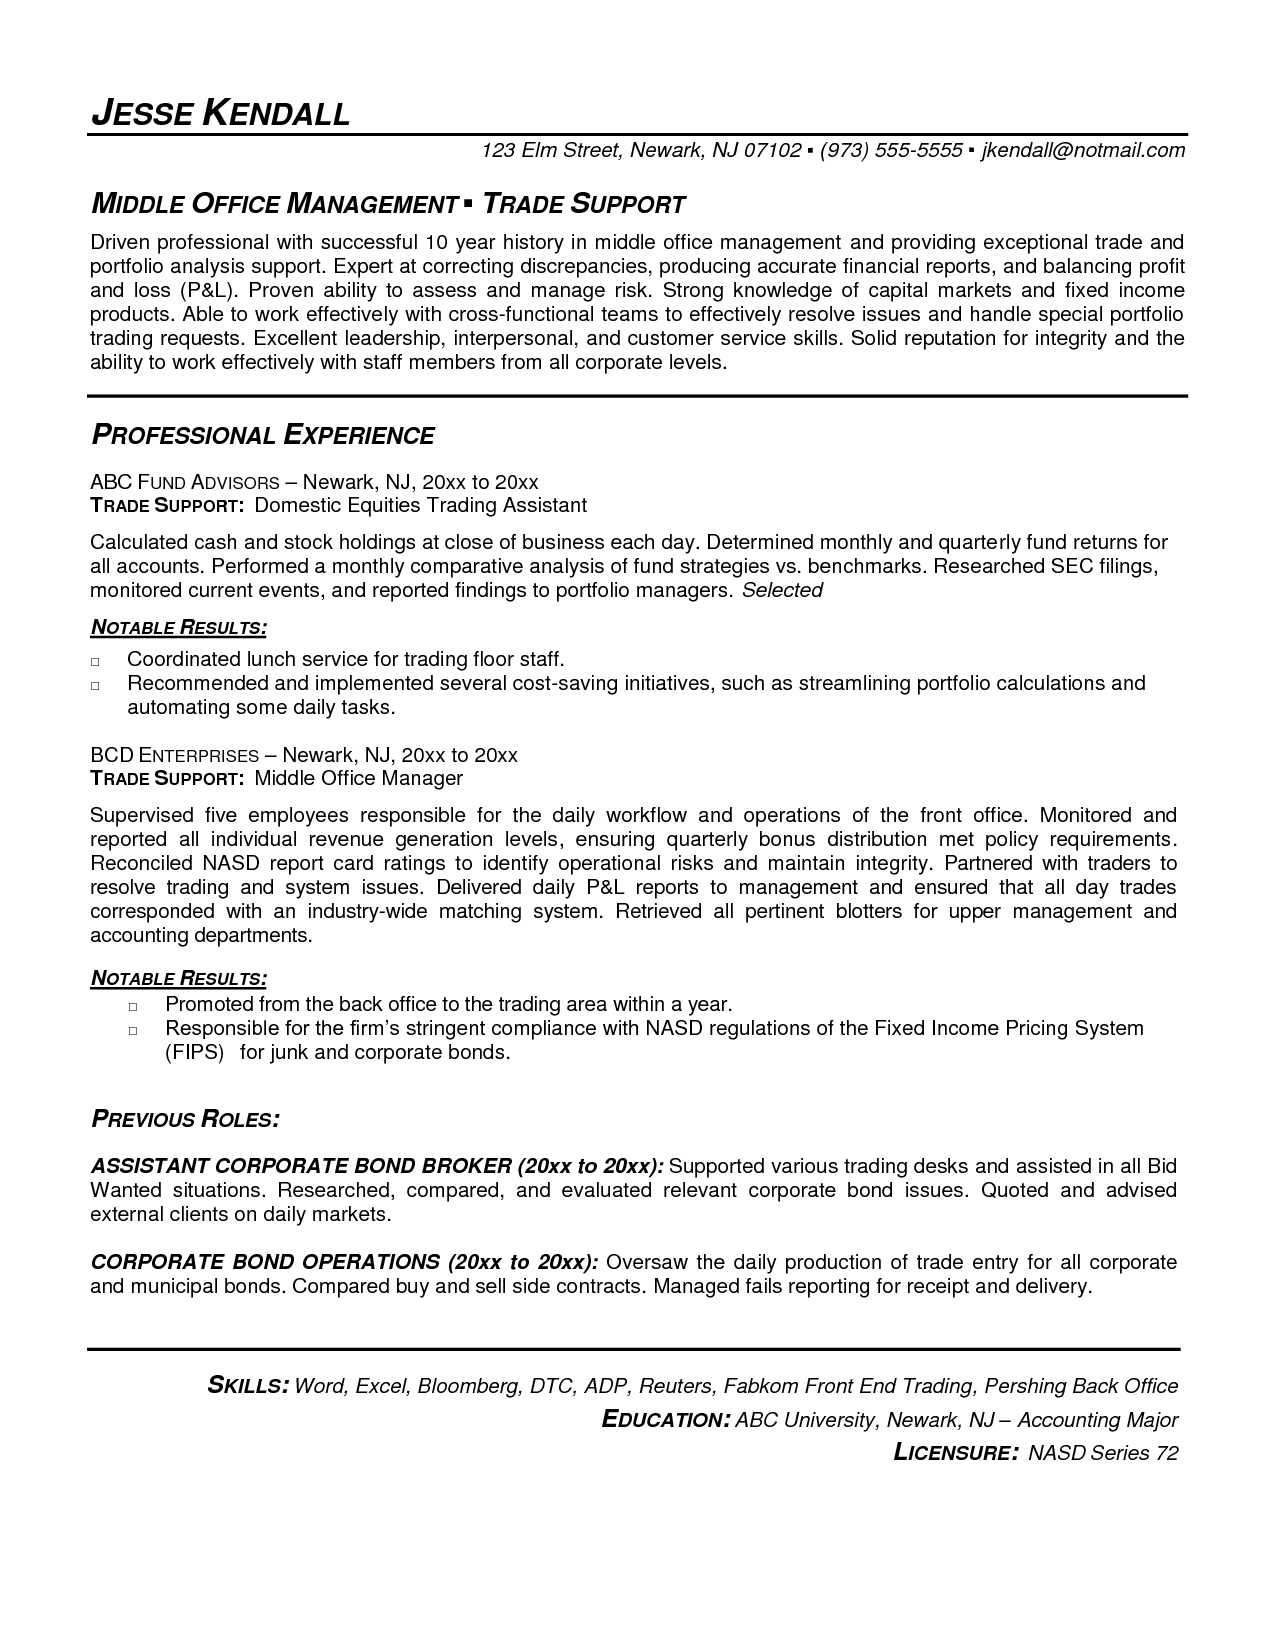 Career Resume Template Resume Template Proprietary Trading Stock Broker